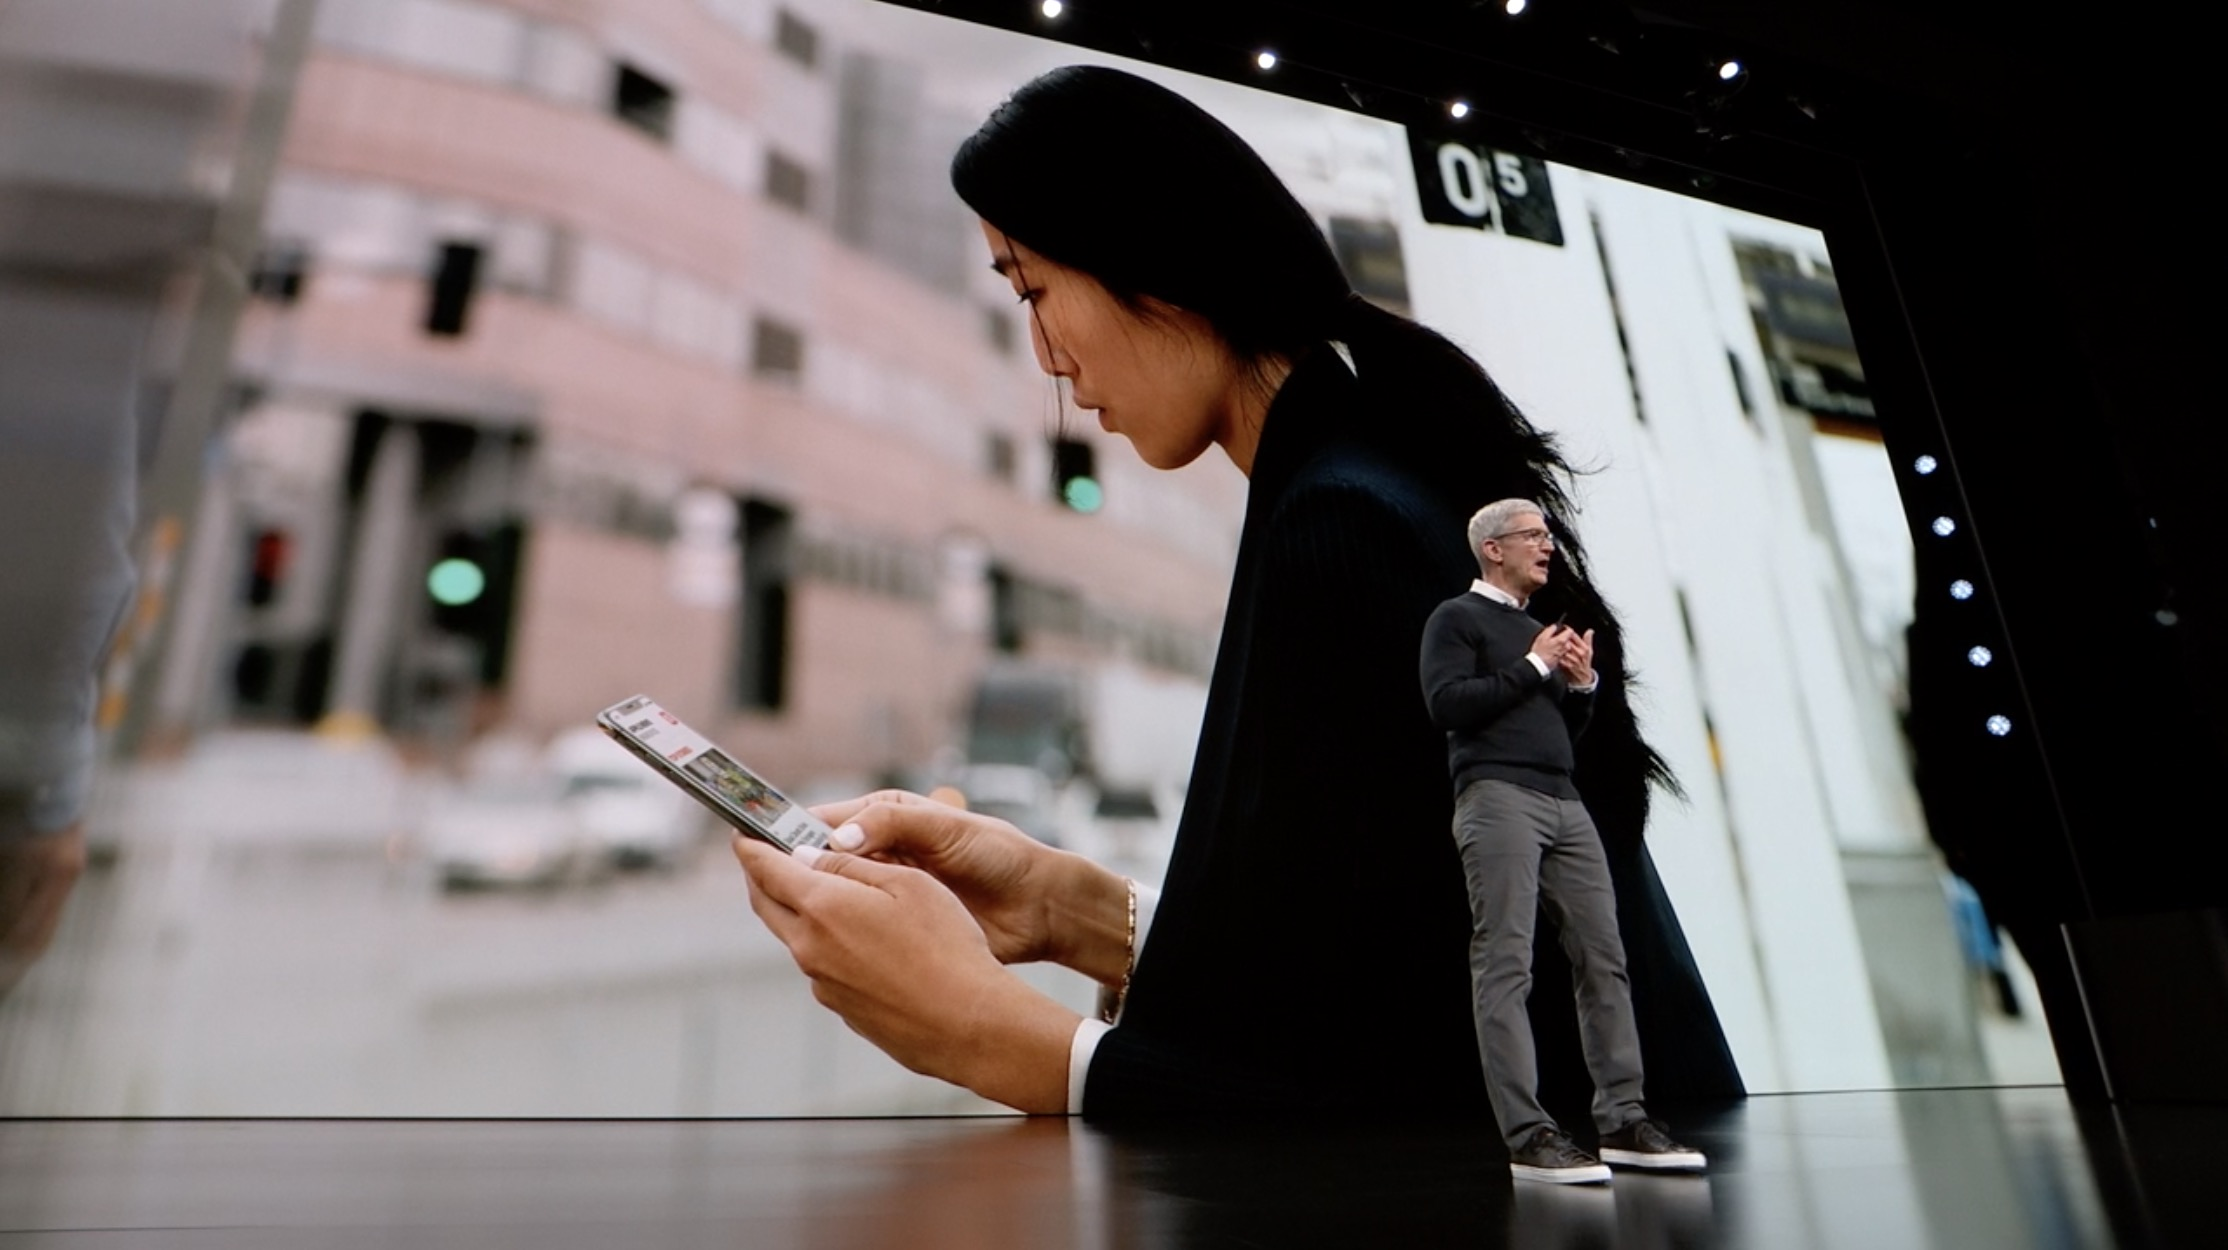 Apple announces Apple News+ with 300 publications at $10 per month